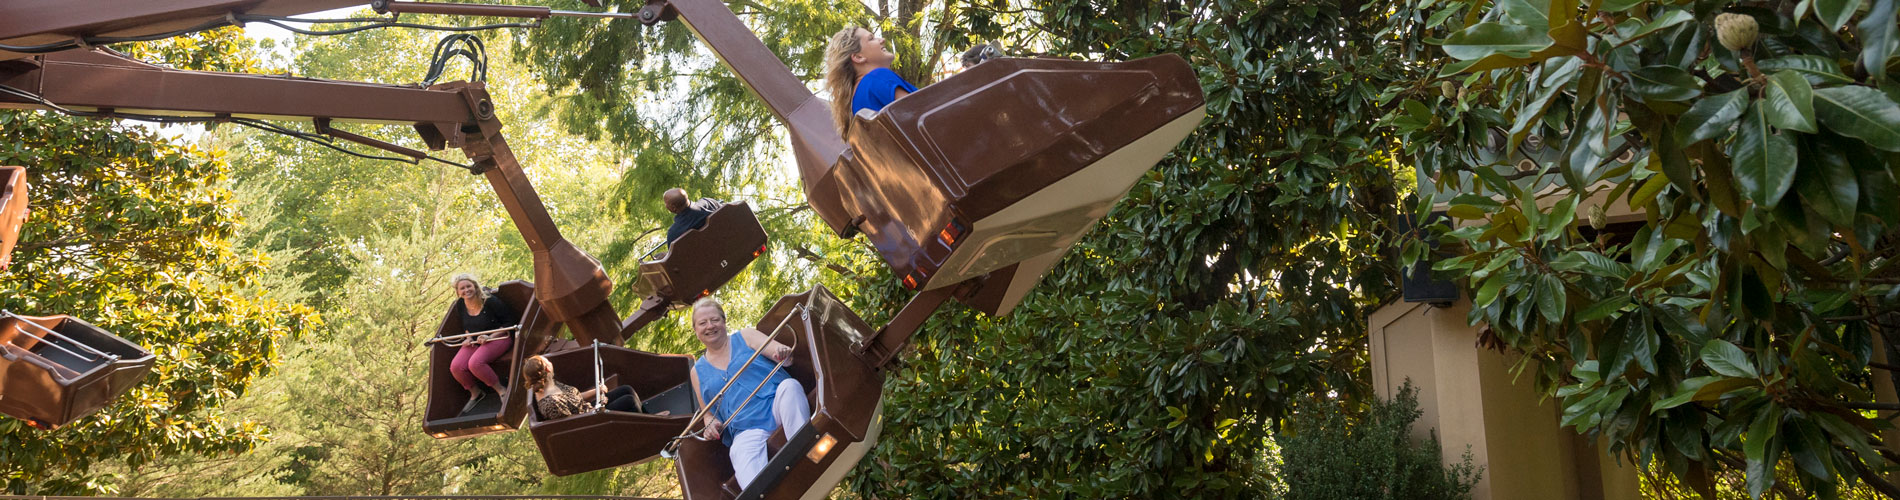 The Flying Machine - Spinning Ride